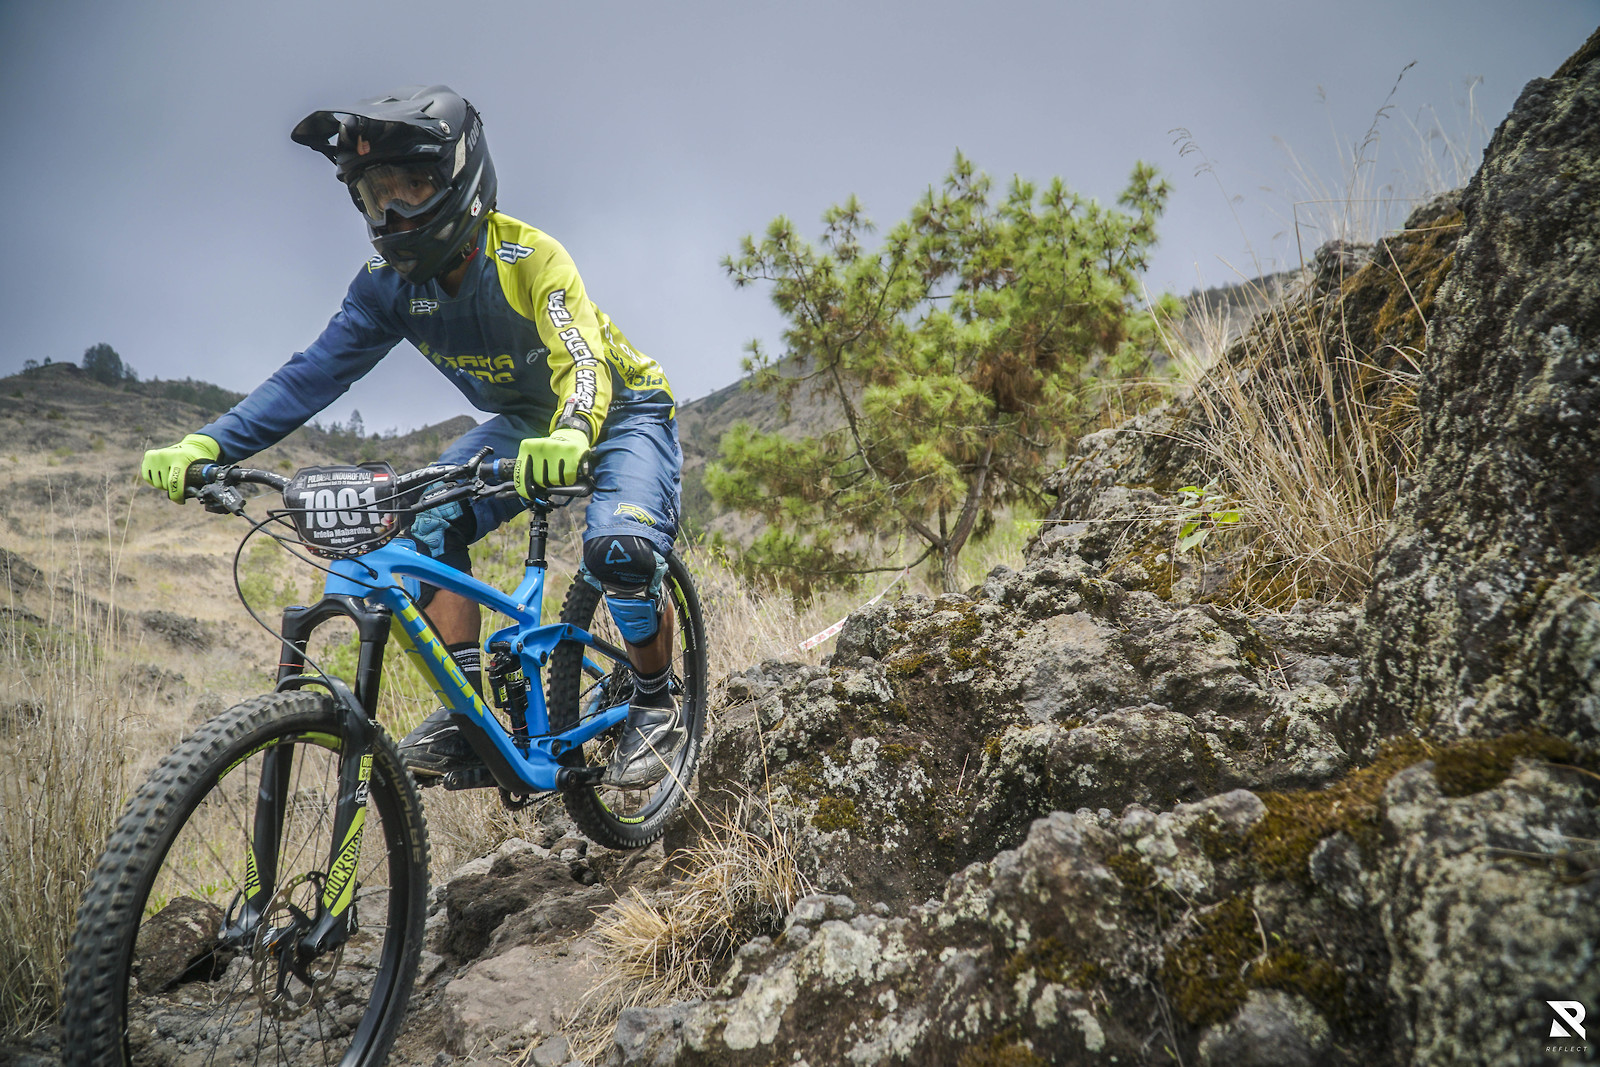 Eyes on prize - RezaAkhmad - Mountain Biking Pictures - Vital MTB